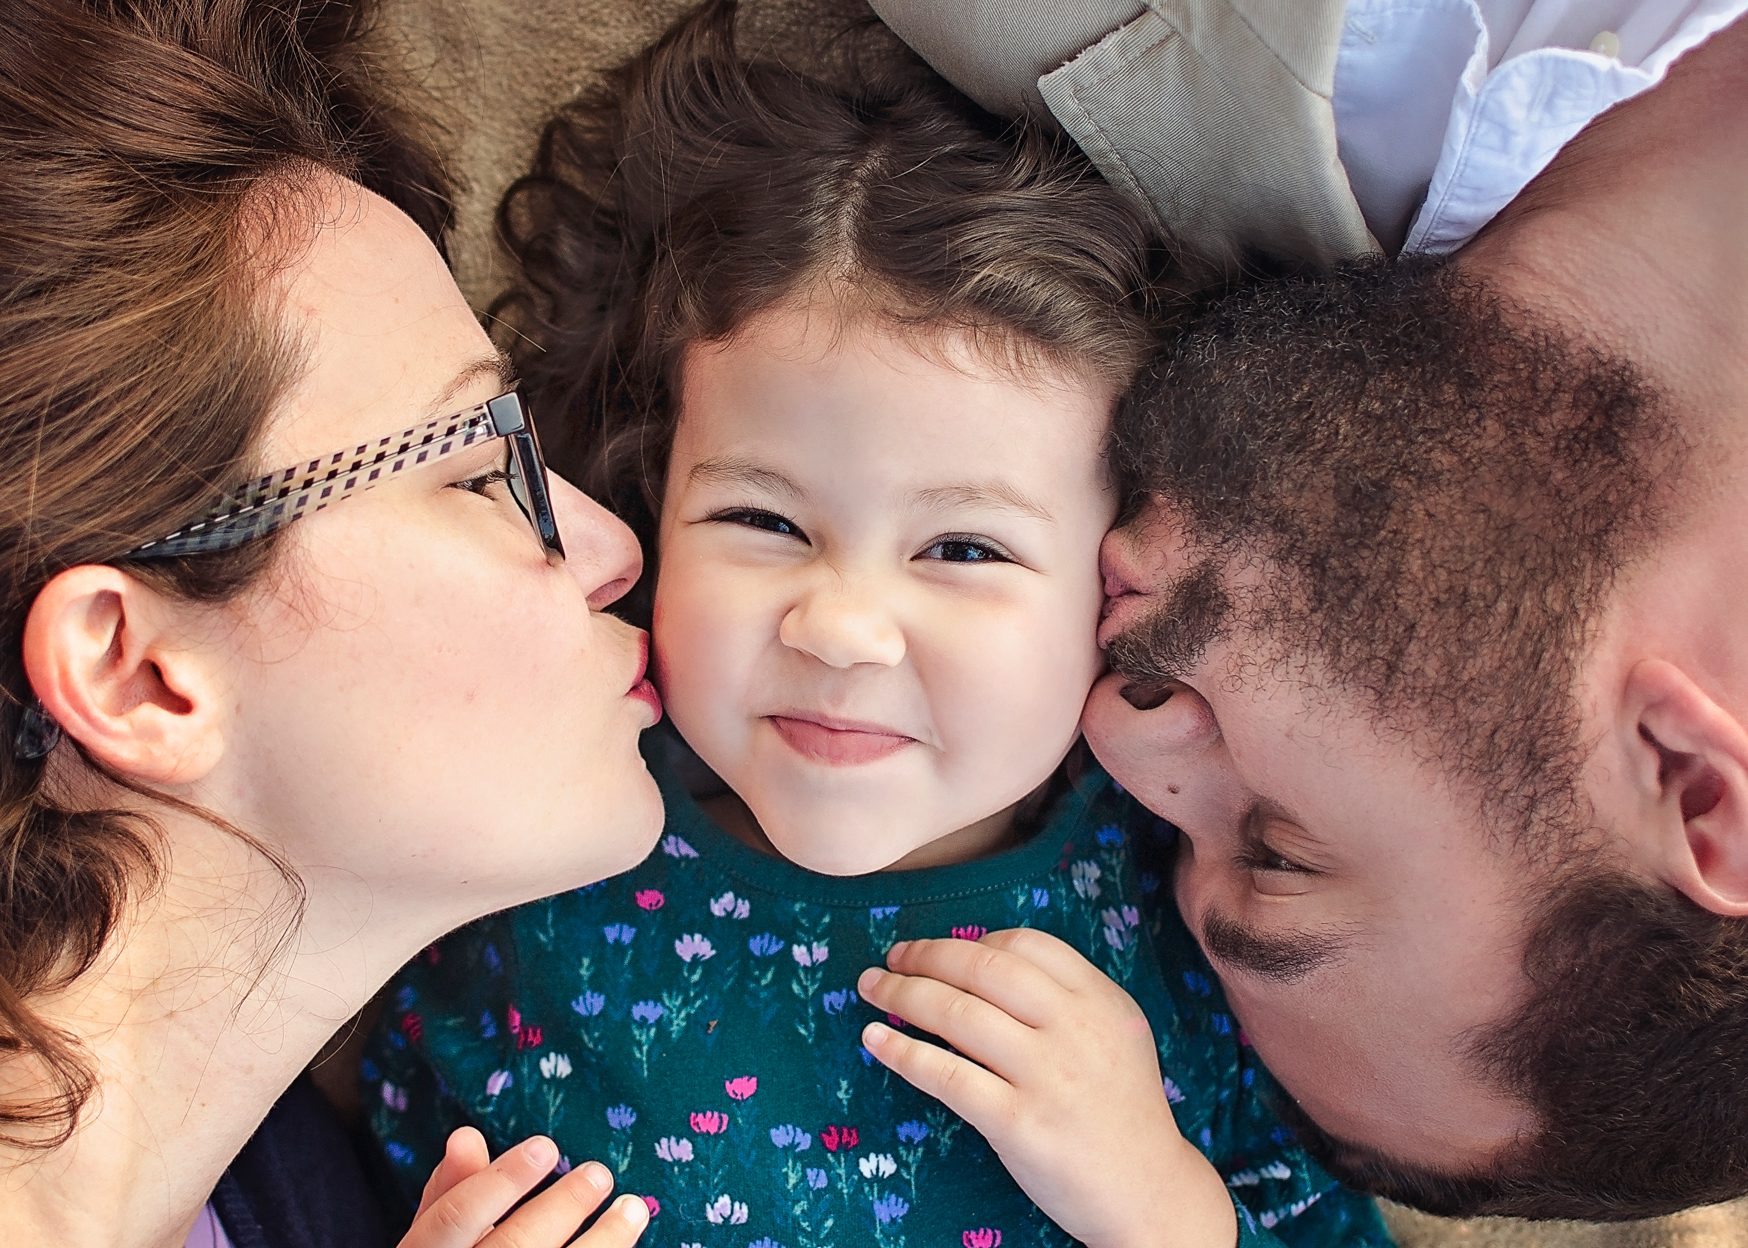 san-diego-family-photography-cheek-kisses-mom-dad.png